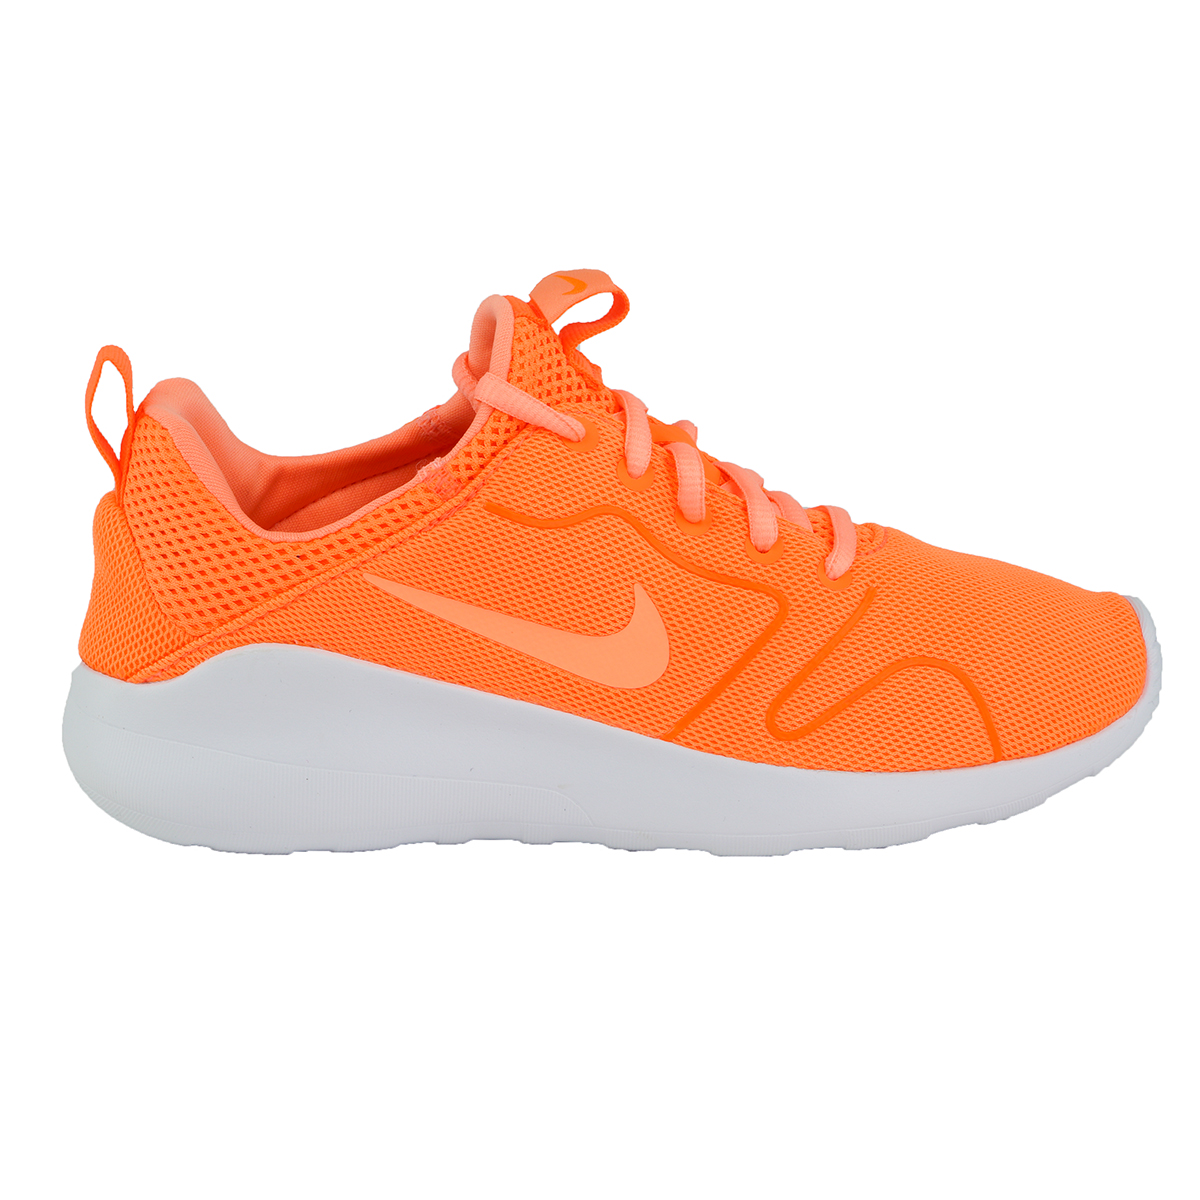 low cost 097d1 78461 Details about Nike Women s Kaishi 2.0 Running Shoes